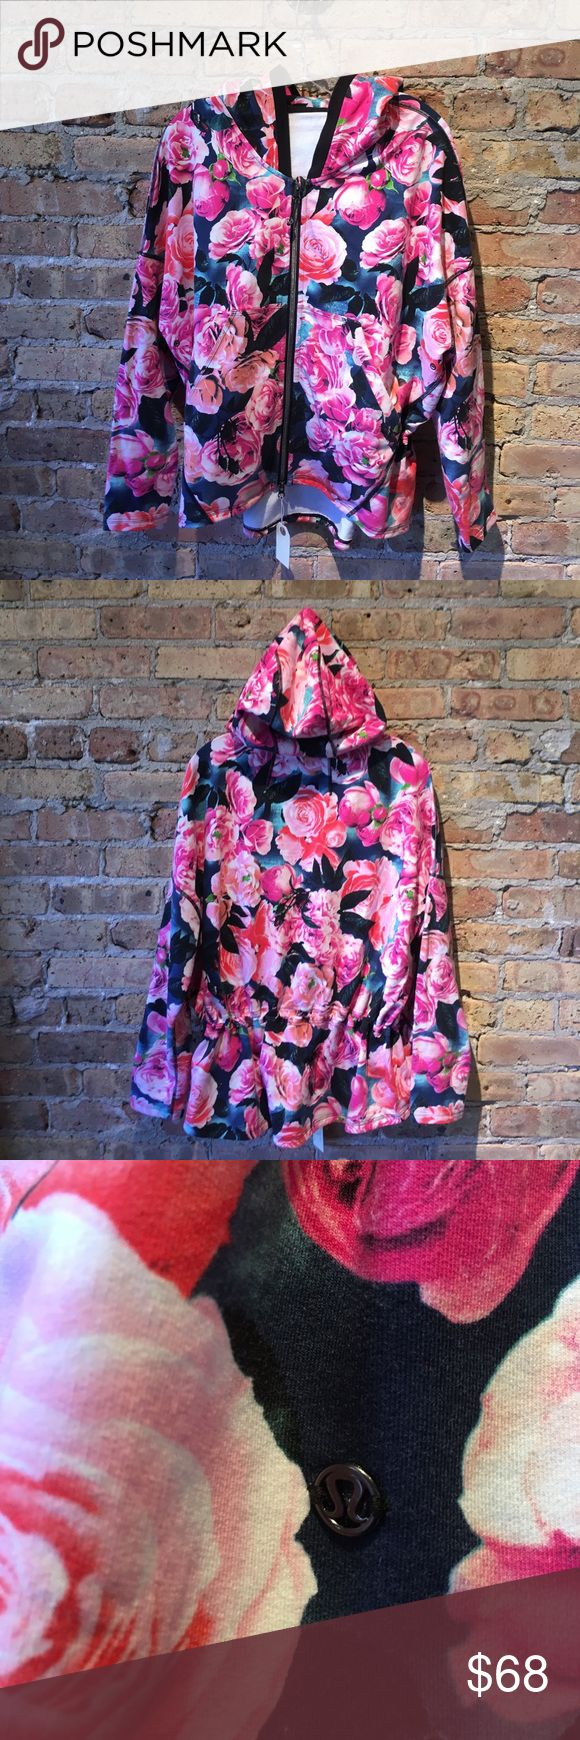 Lululemon floral zip up hoodie sz 10 54655 Multi colored floral zip up sweat jacket with hood and gathered waist at back sz 10 excellent used condition lululemon athletica Jackets & Coats